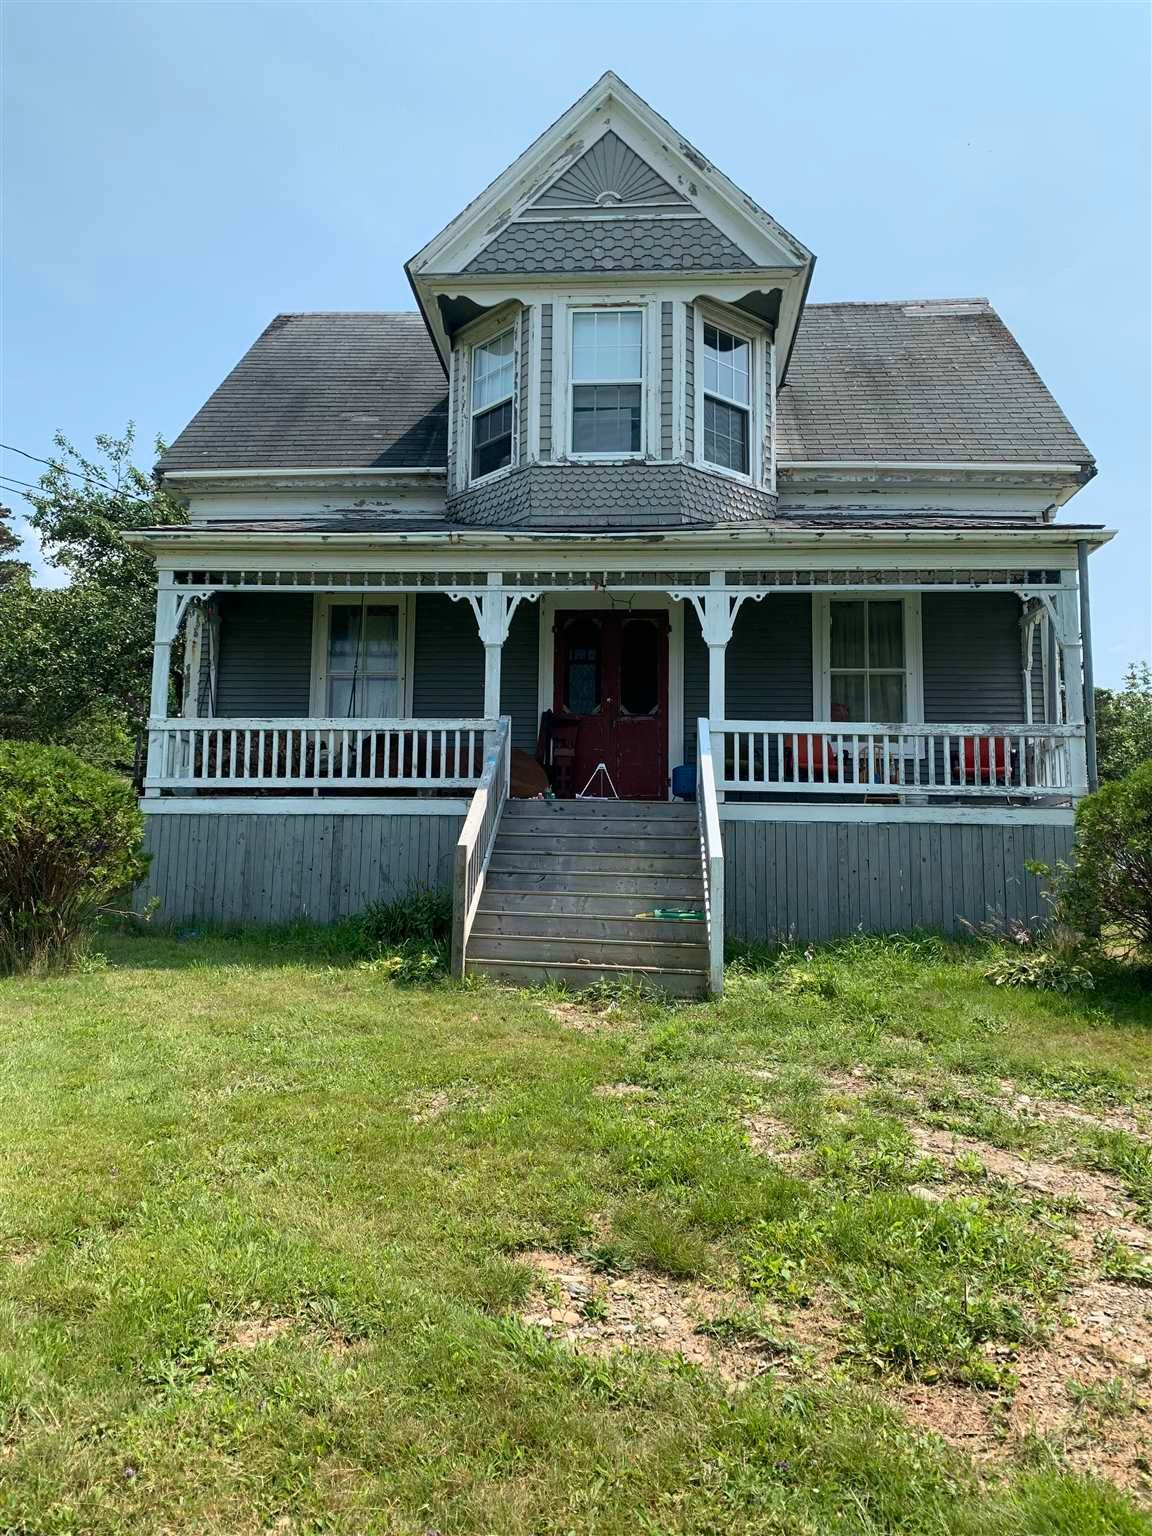 Main Photo: 8094 Highway 101 in Barton: 401-Digby County Residential for sale (Annapolis Valley)  : MLS®# 202119300